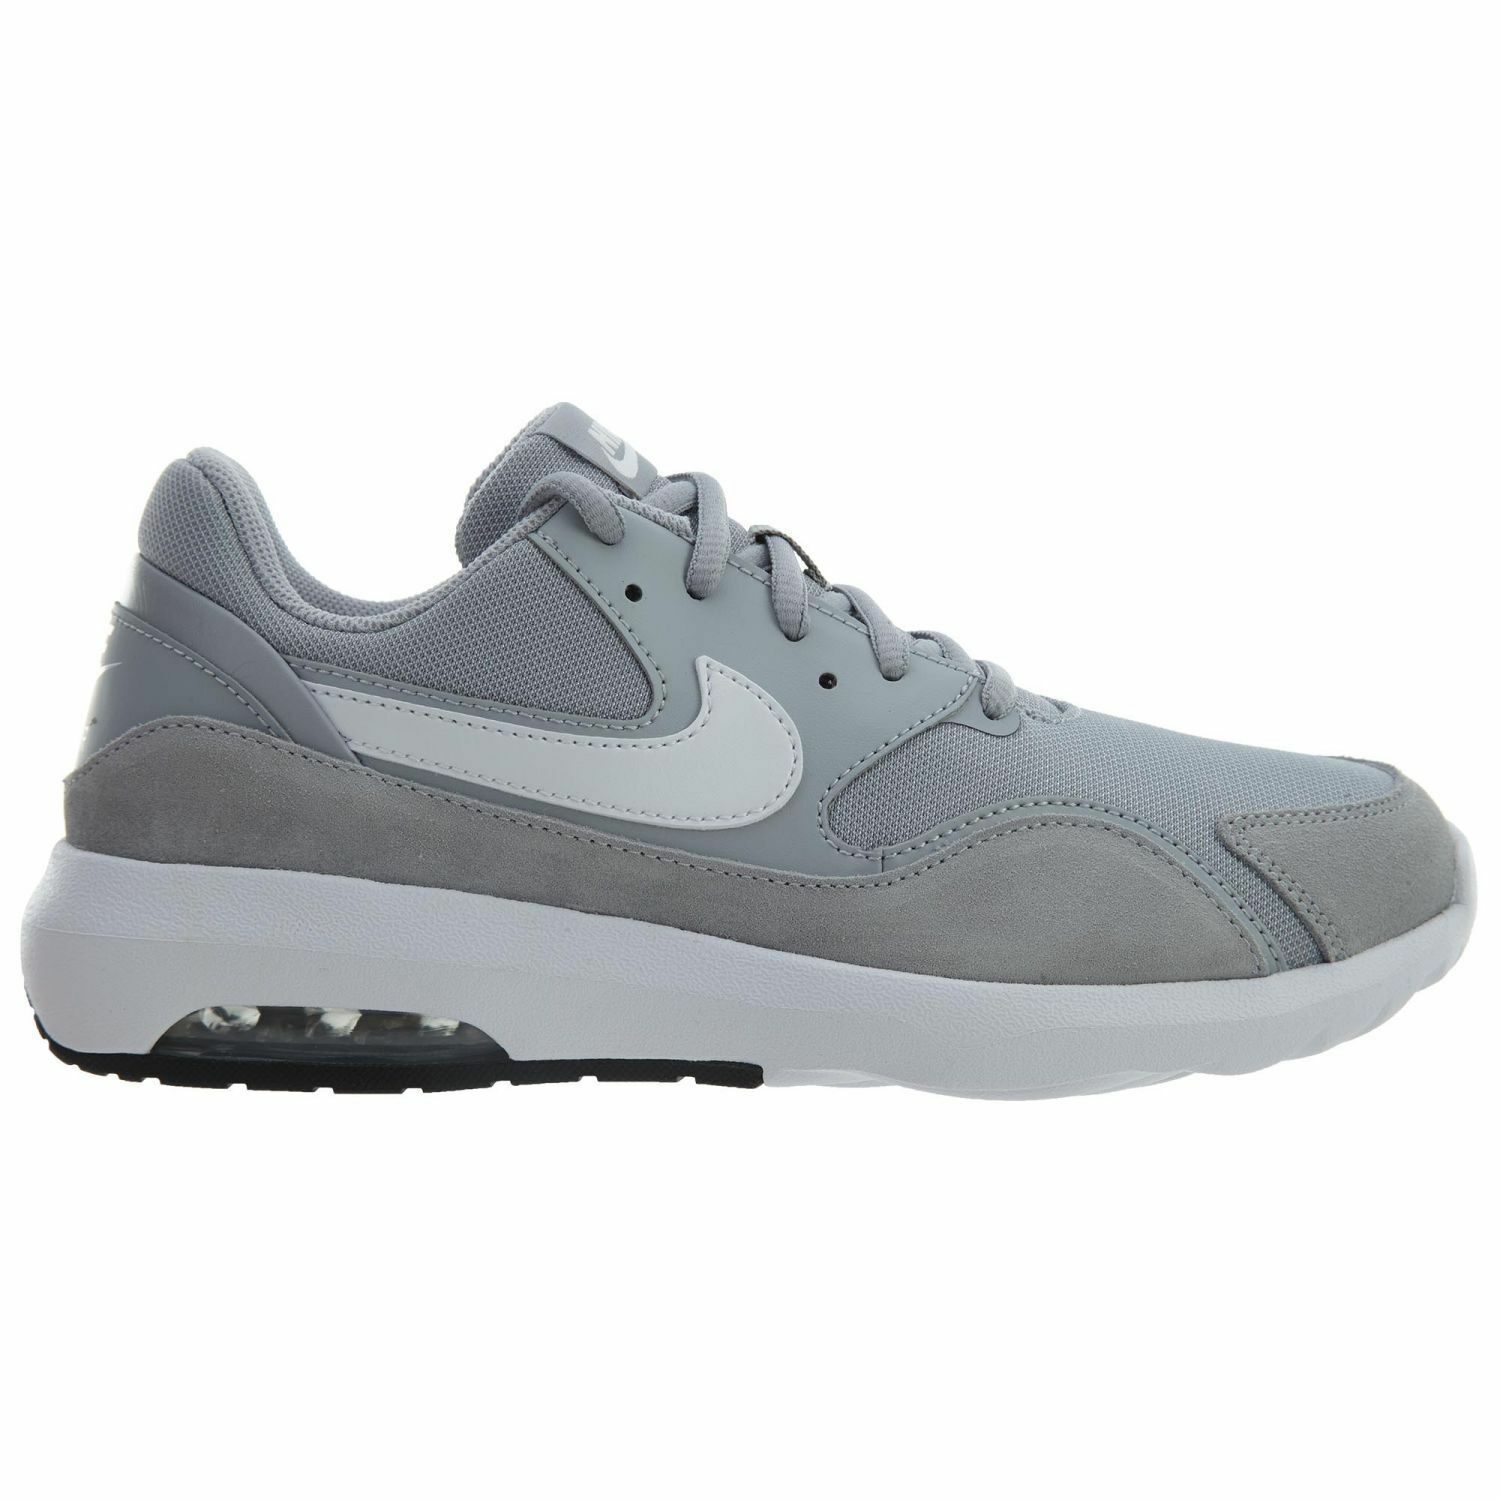 ed5f38c3583 Nike Air Max Max Max Nostalgic Mens 916781-001 Wolf Grey White Running Shoes  Size 7.5 1d271e